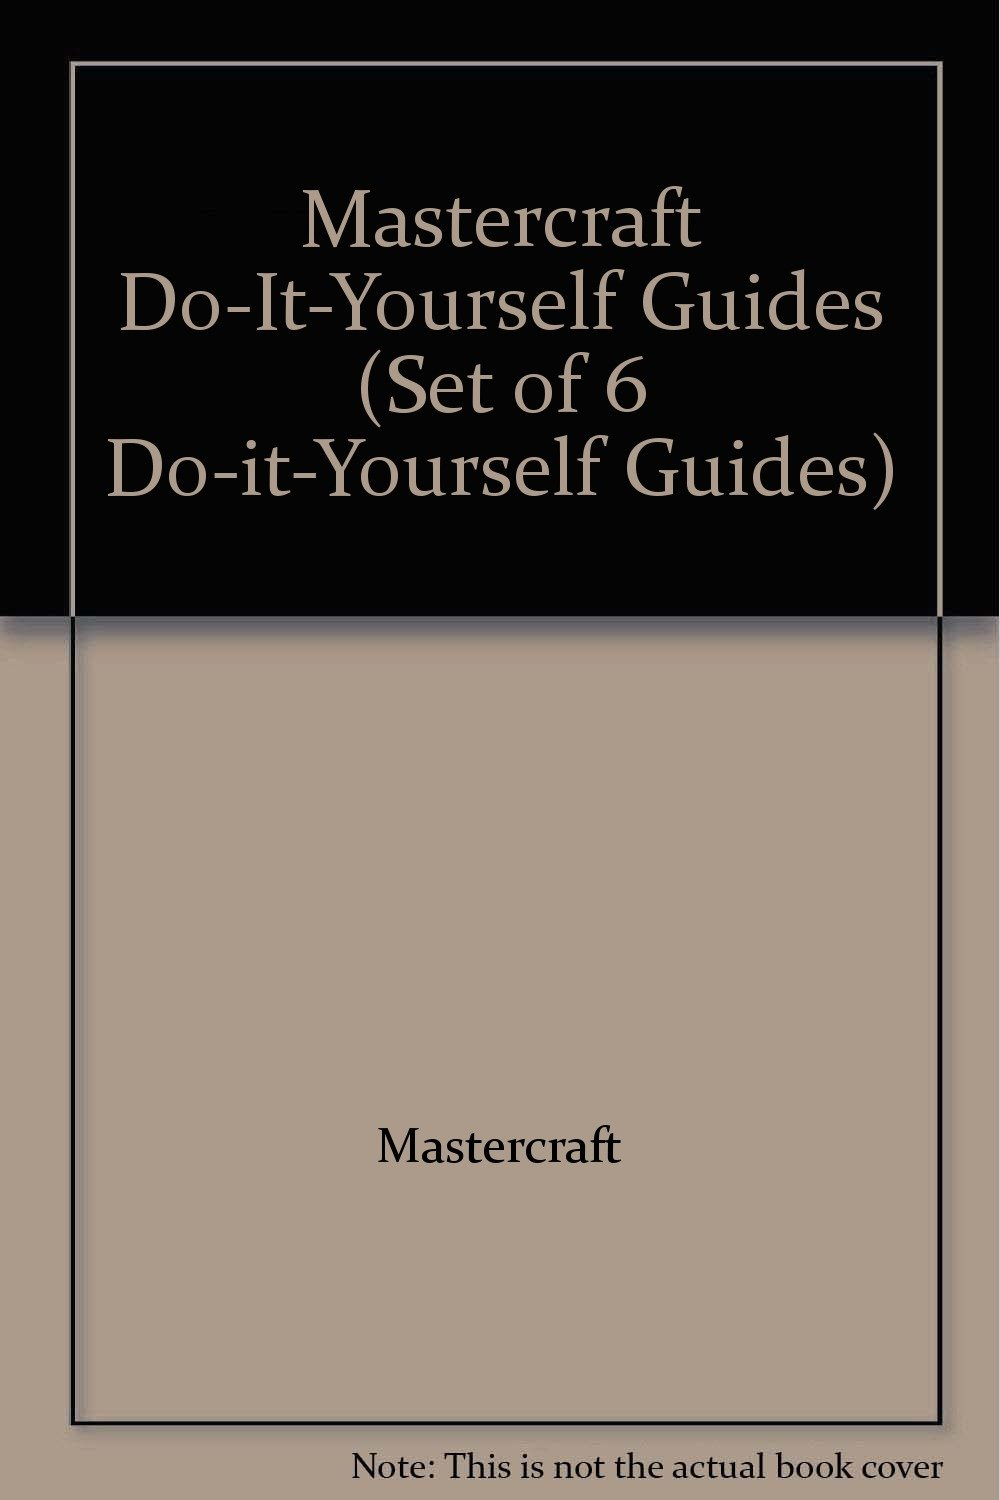 Mastercraft Do-It-Yourself Guides (Set of 6 Do-it-Yourself Guides):  Amazon.com: Books